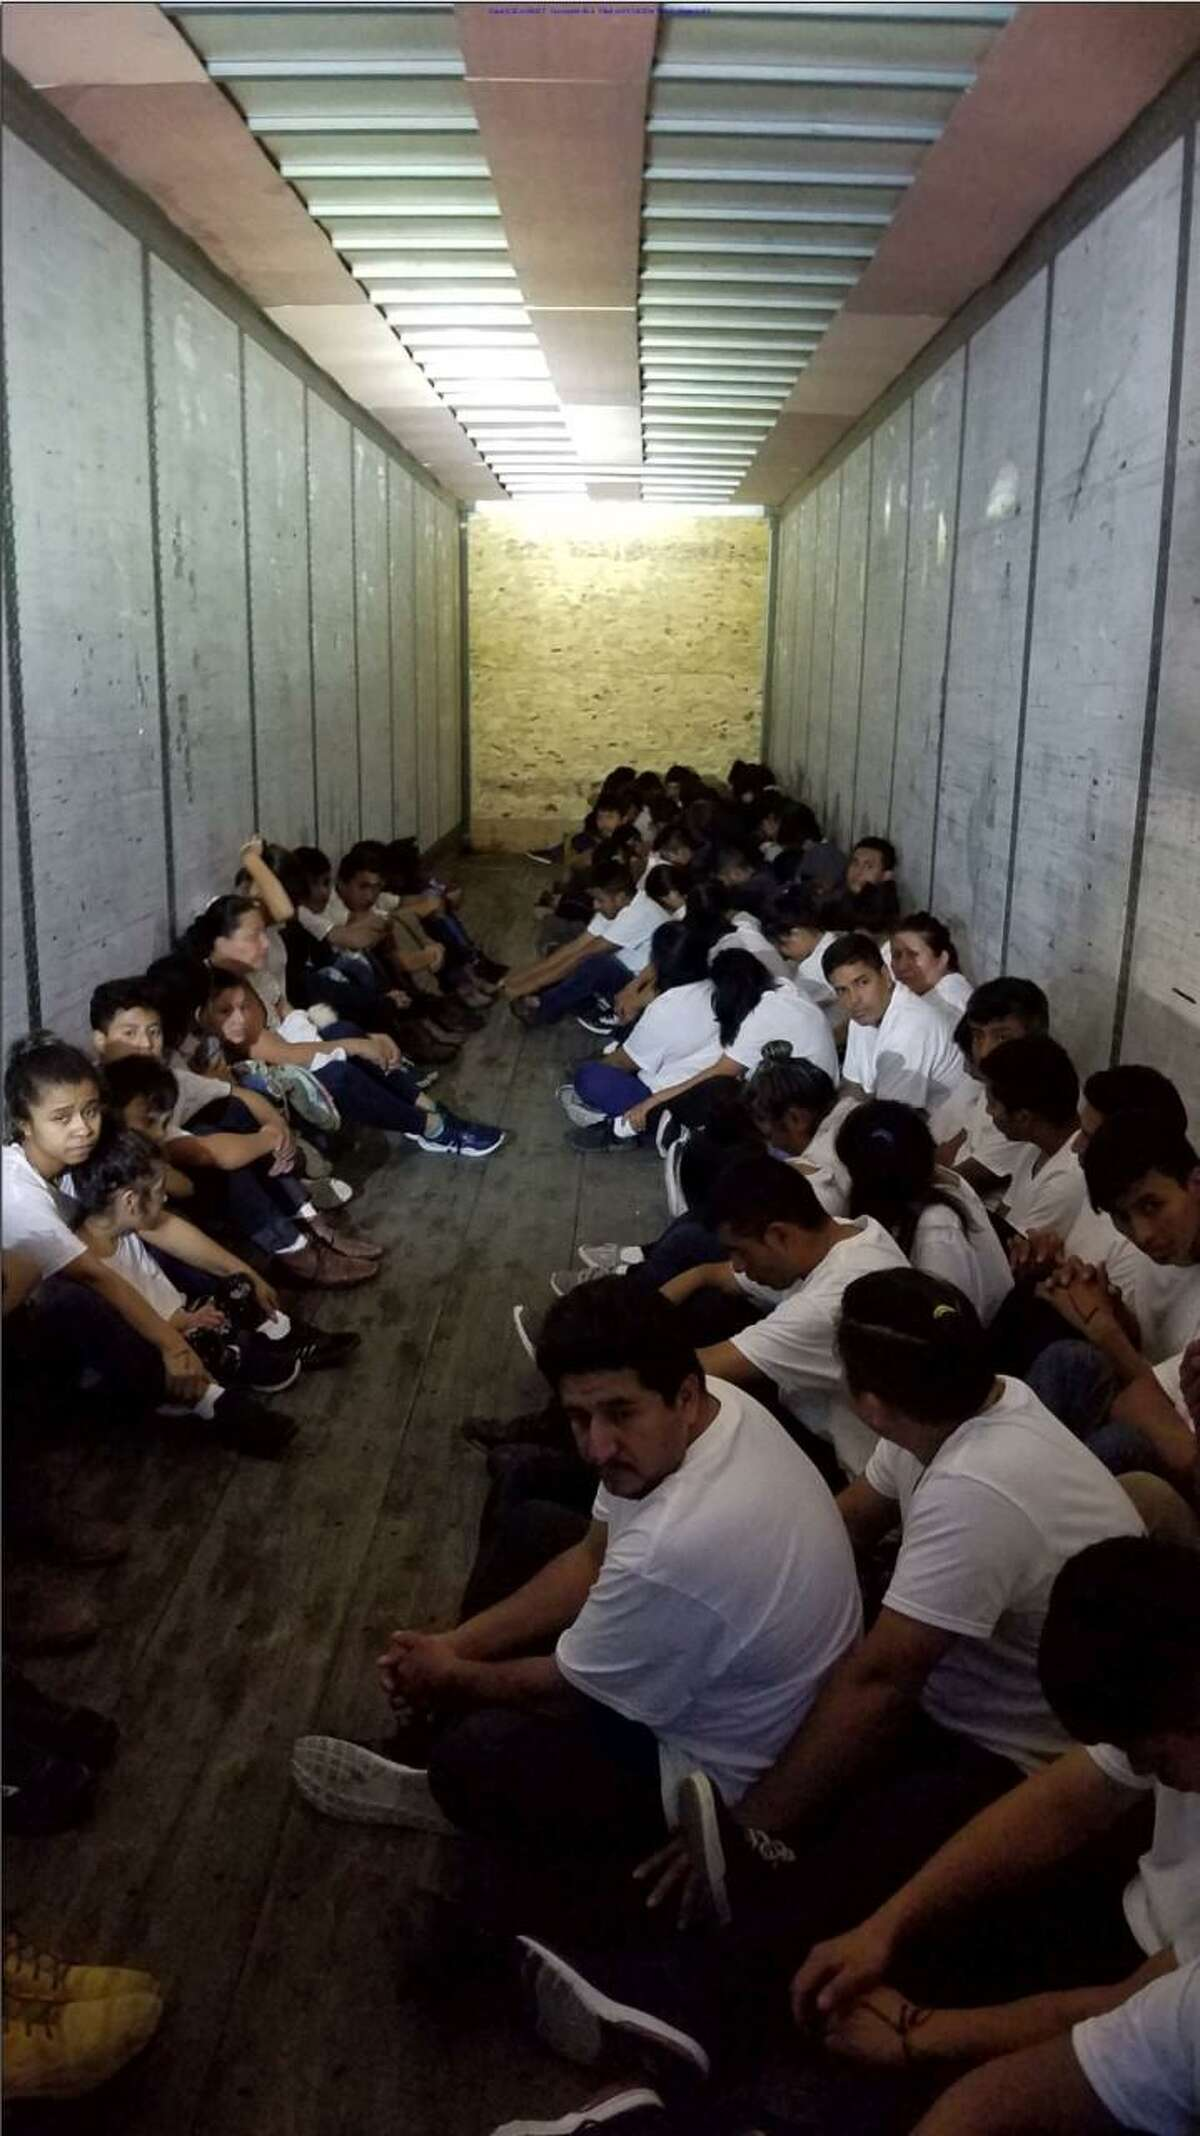 U.S. Border Patrol agents said this is a group of 69 adults and 14 juveniles who were riding in the back of a trailer. All had crossed the border illegally. On Thursday, the truck was convicted of human smuggling.